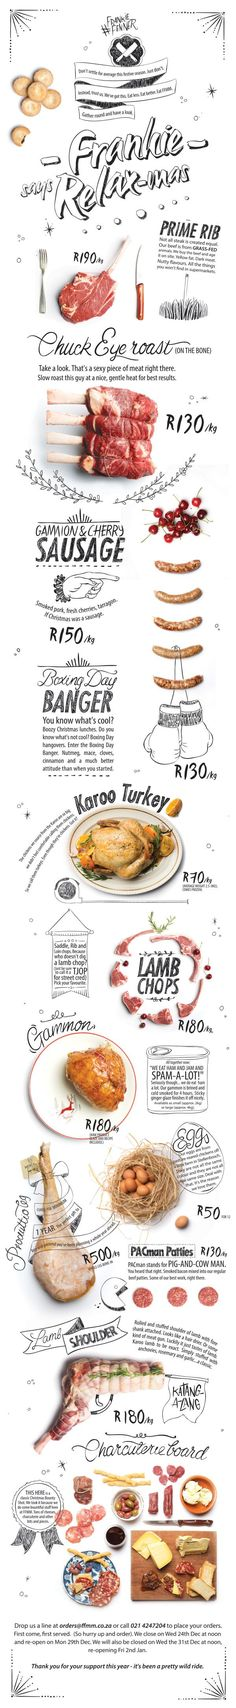 Frankie Says Relax-mas  #Infographic #Design #Christmas